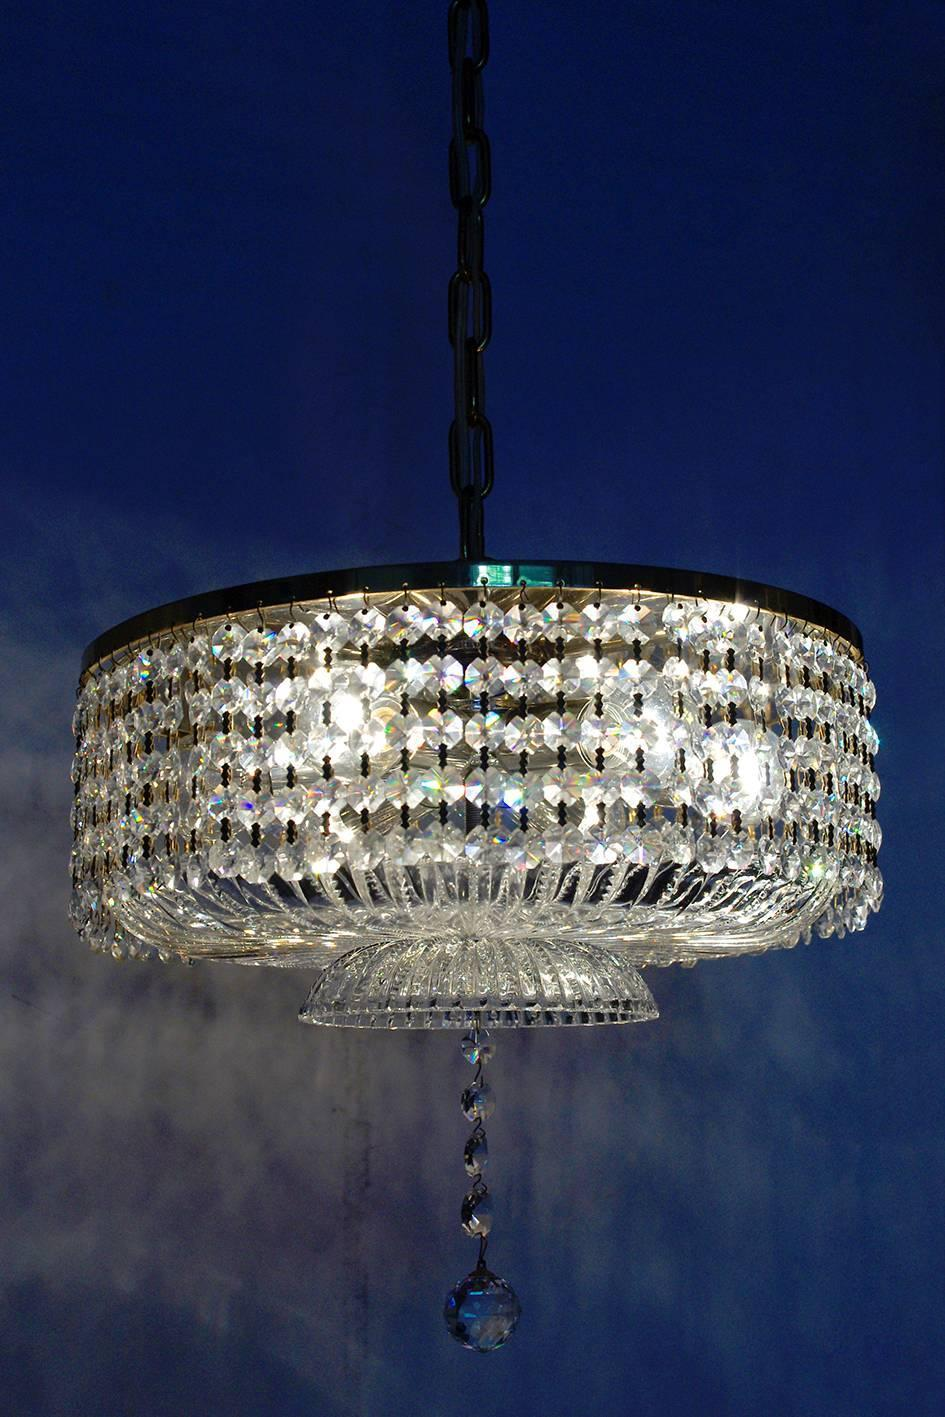 Ceiling Lights Germany : Wonderful ceiling light chandelier by palwa germany s